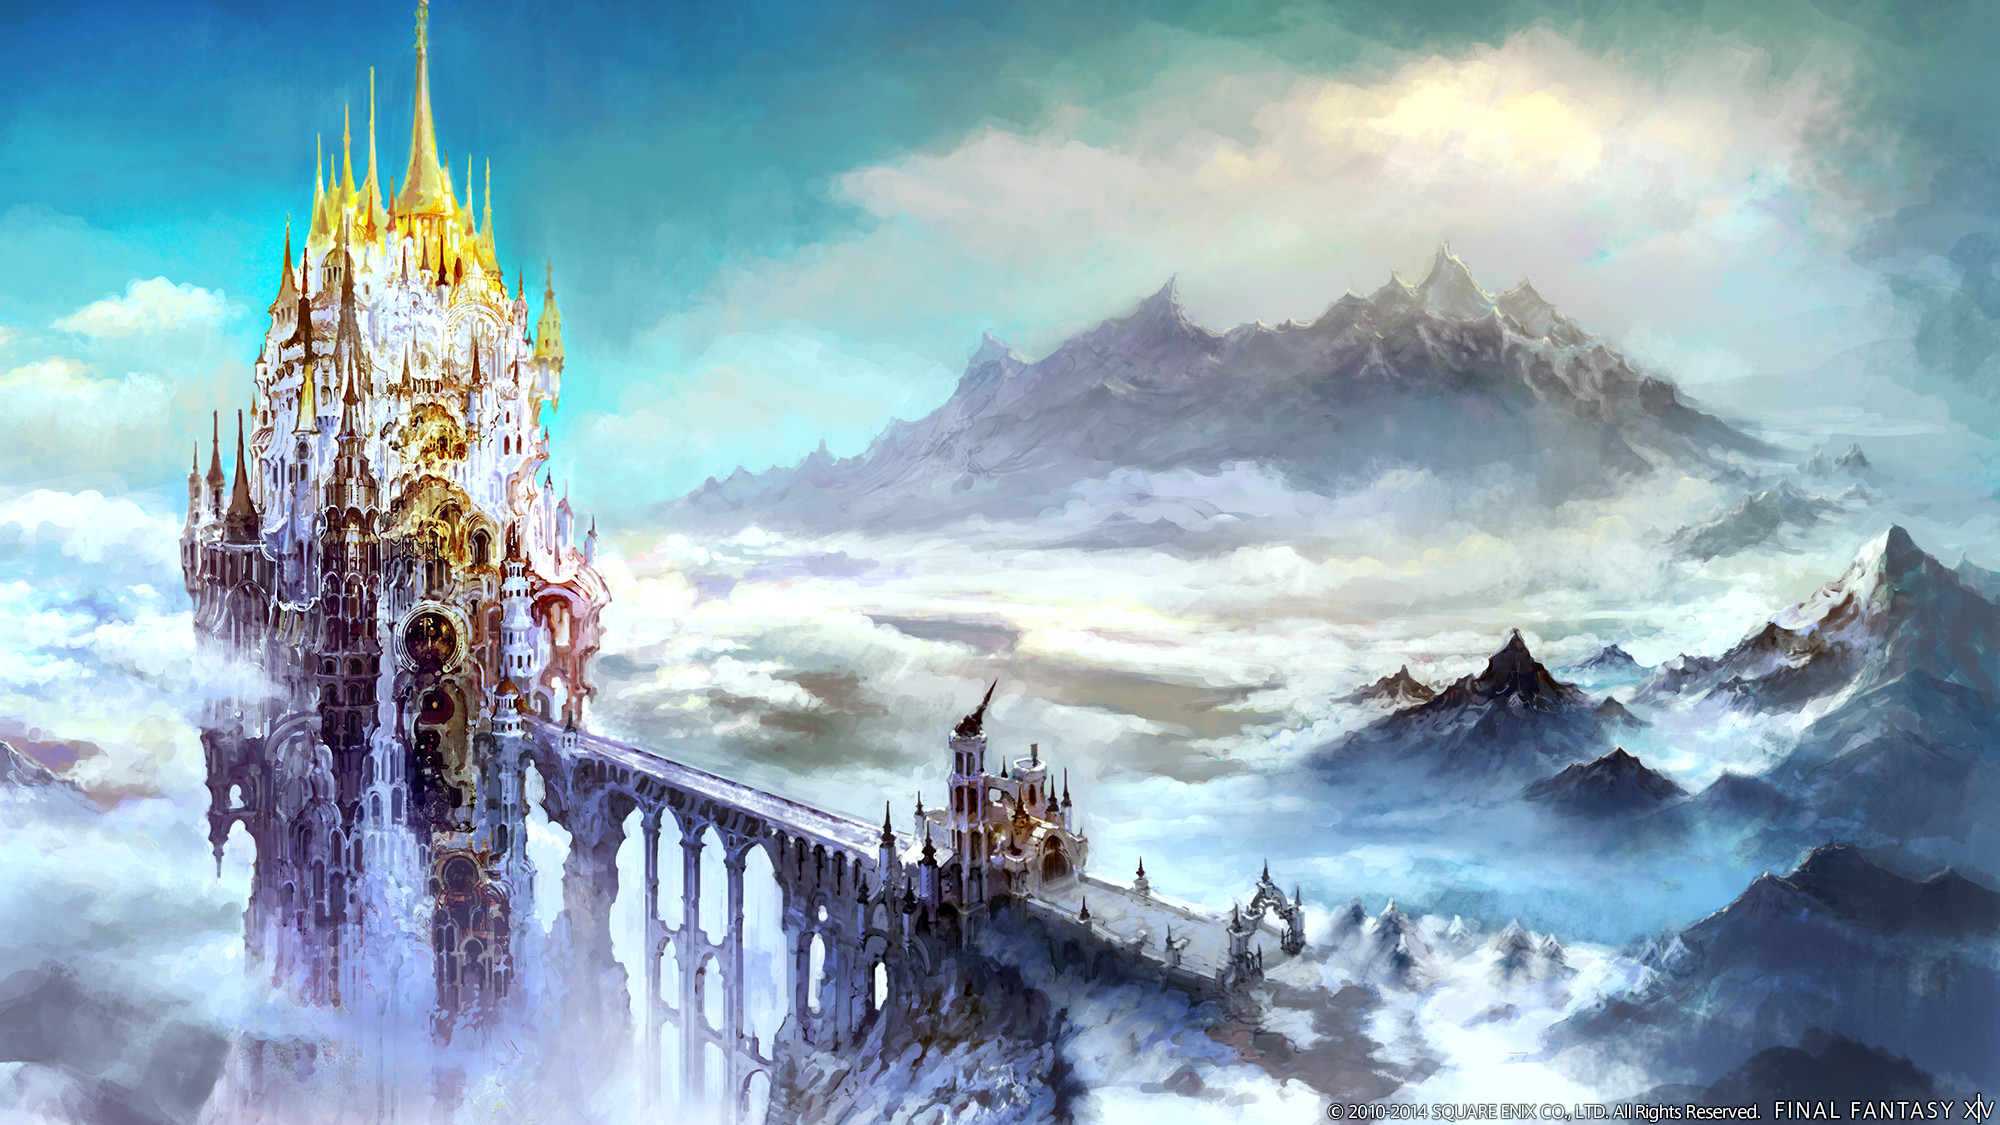 Final fantasy x wallpapers hd 77 images for Fantasy wallpaper hd